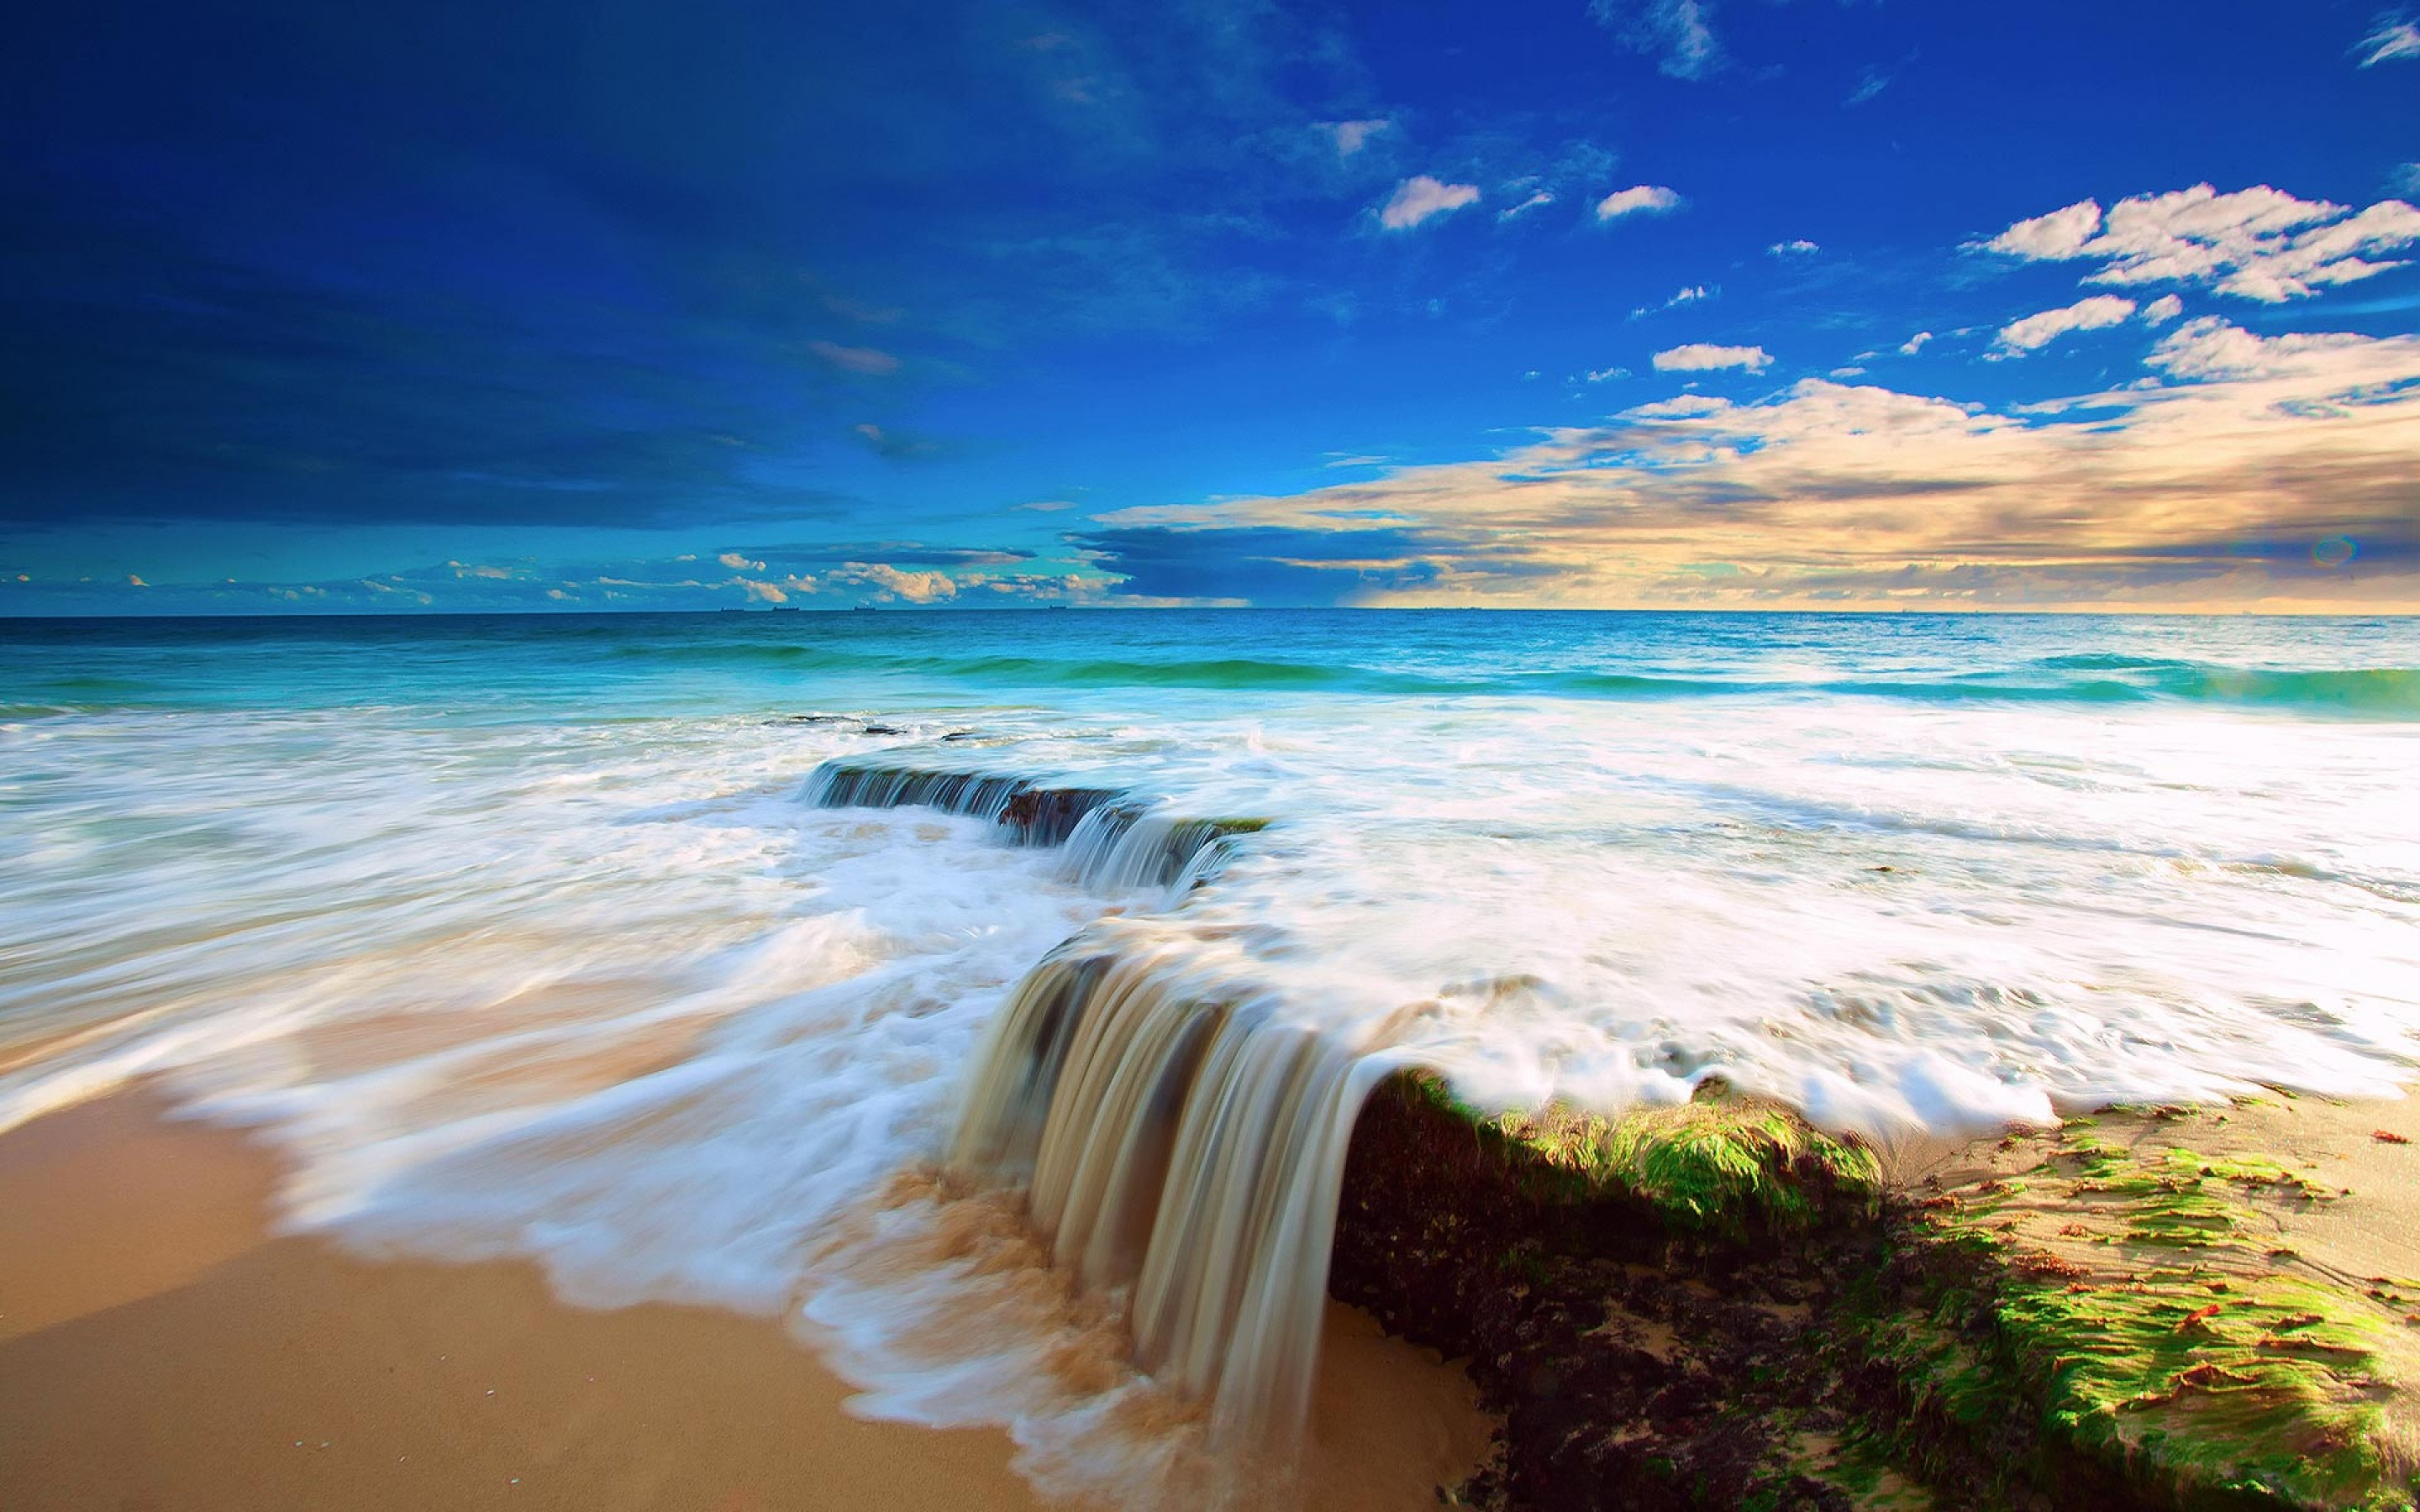 Hawaii Beach Waves HD Wallpaper in High Resolution at Nature Travel 2880x1800